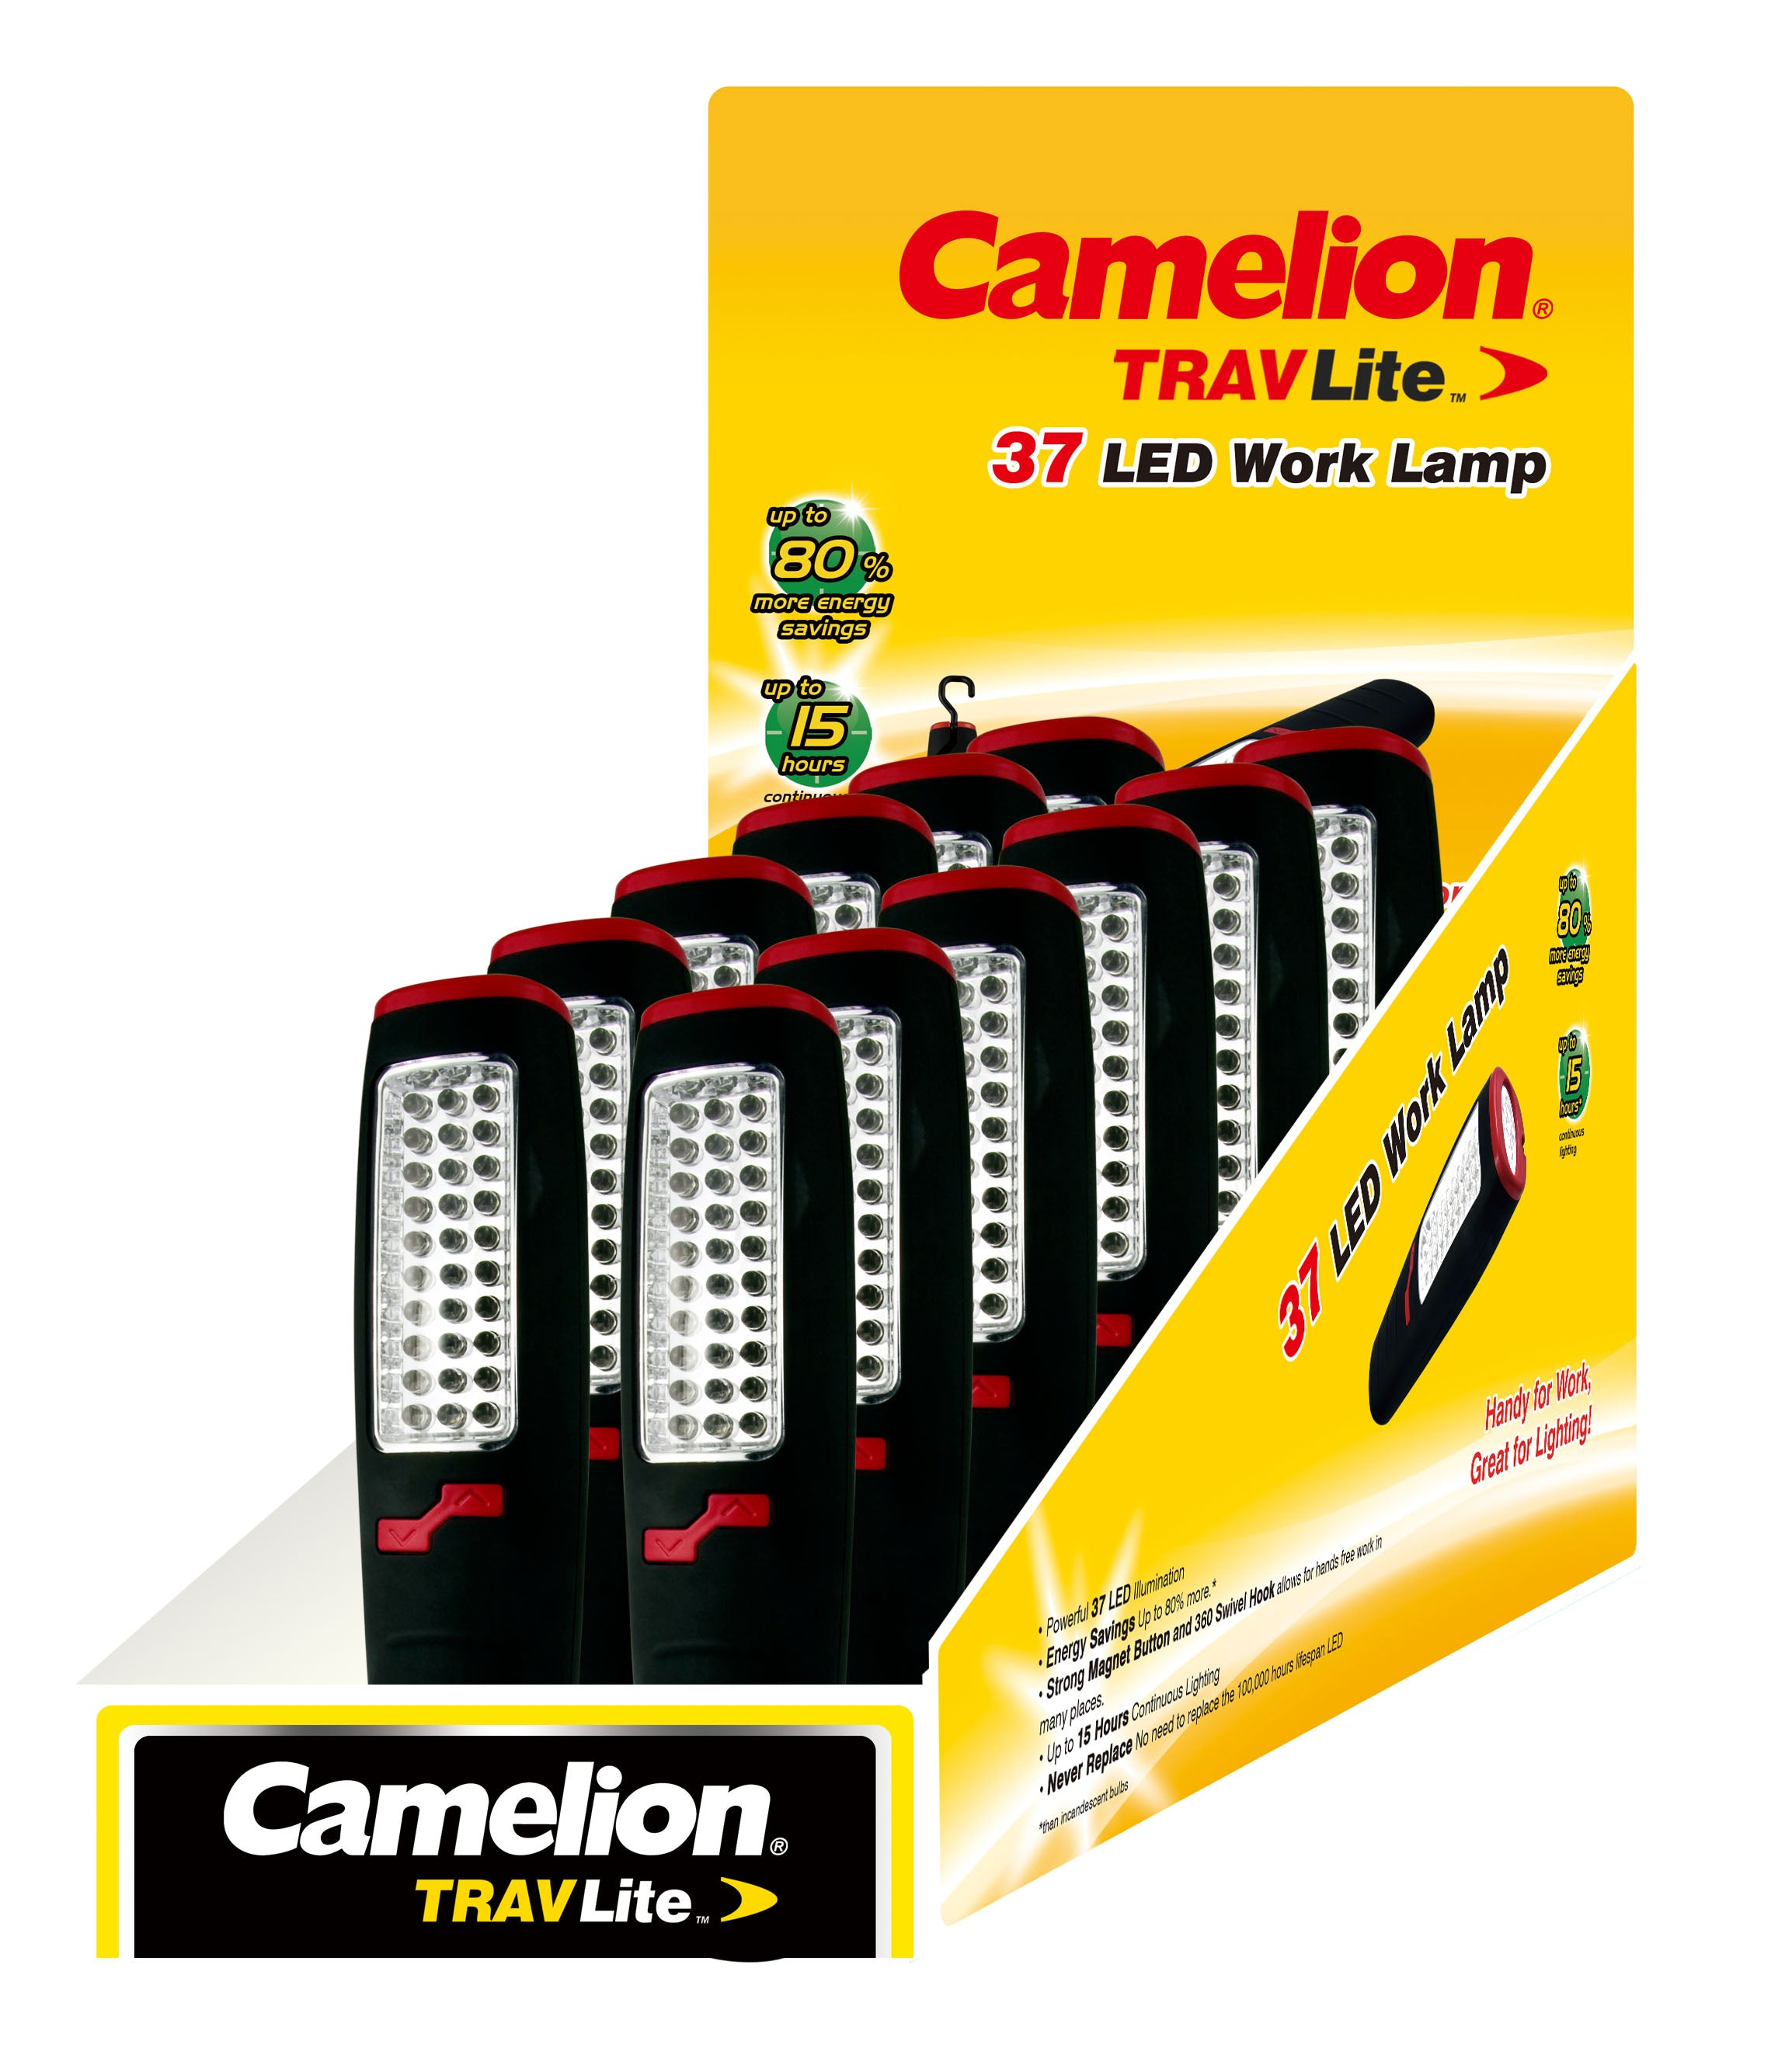 37 LED Worklight Display of 12